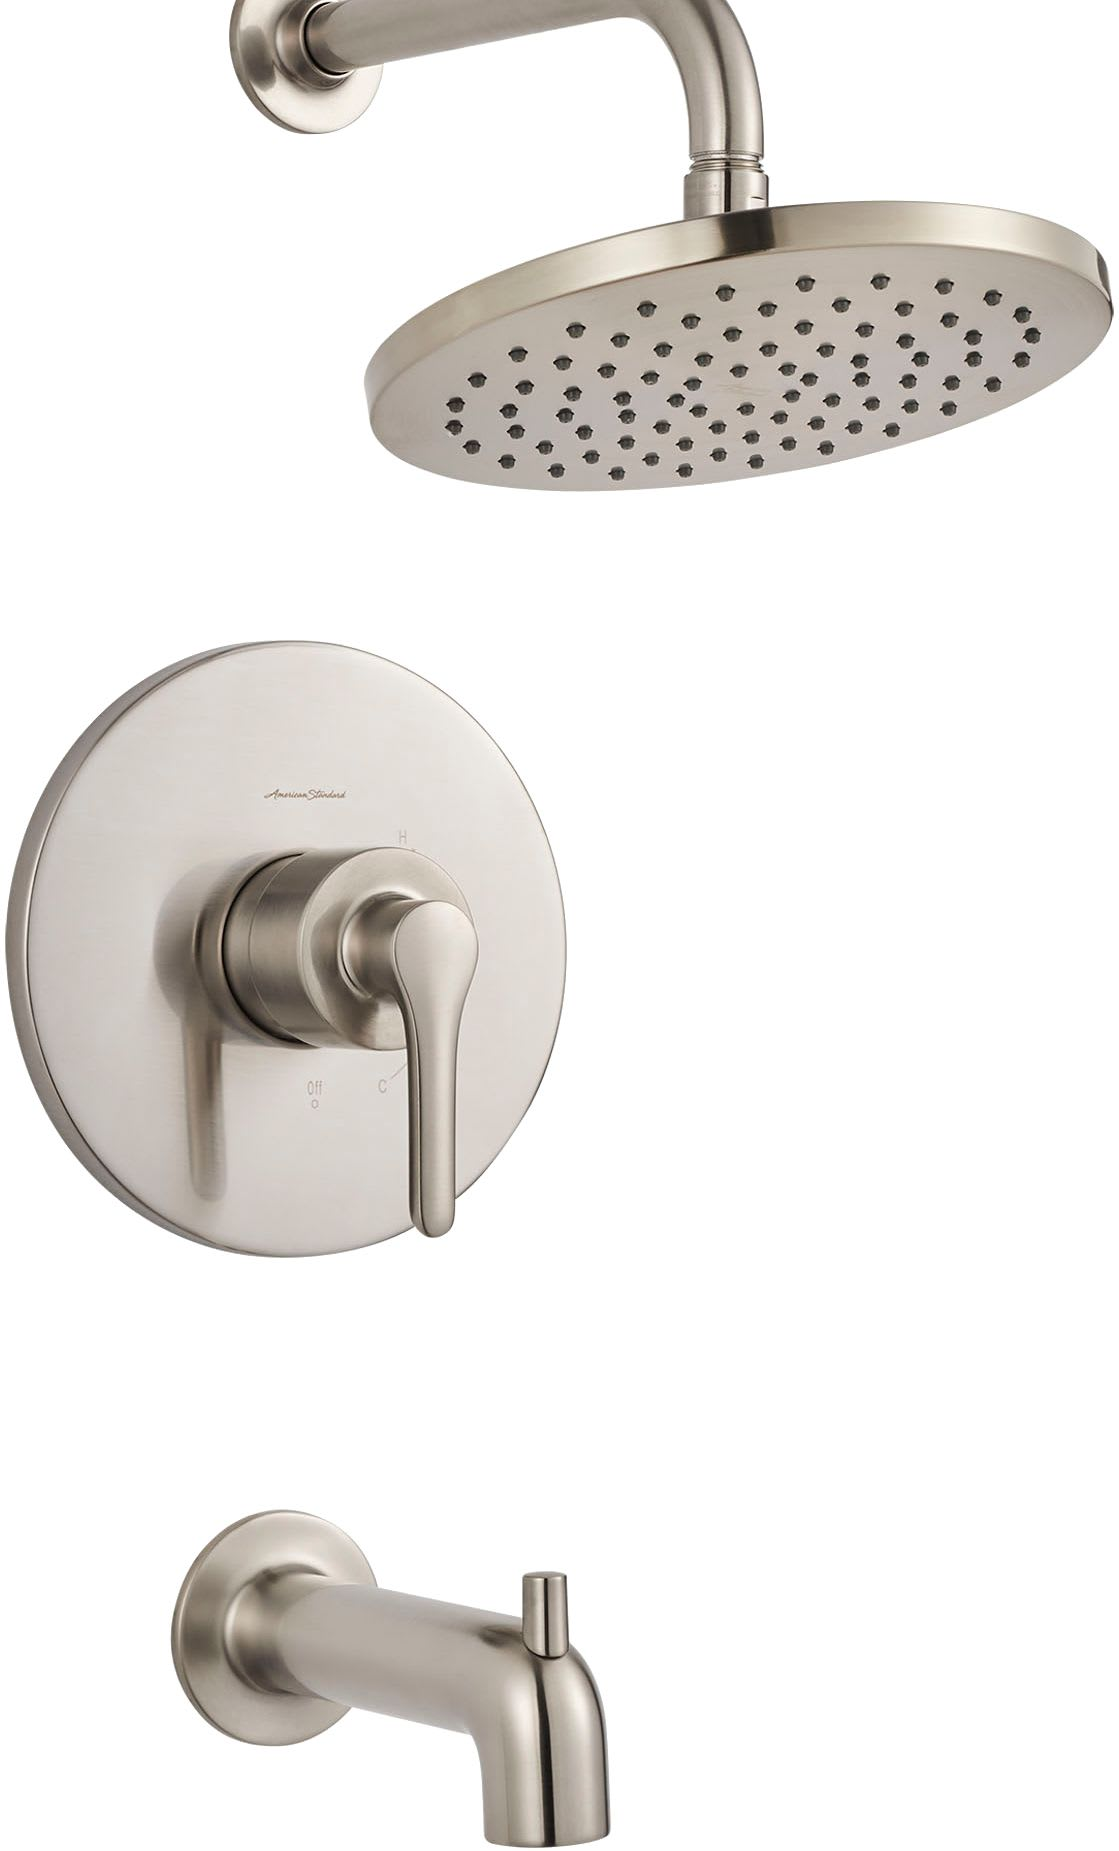 American Standard T105502.002 Chrome Studio S Shower Trim Kit With Valve  Trim, Shower Head, And Tub Spout   Faucet.com